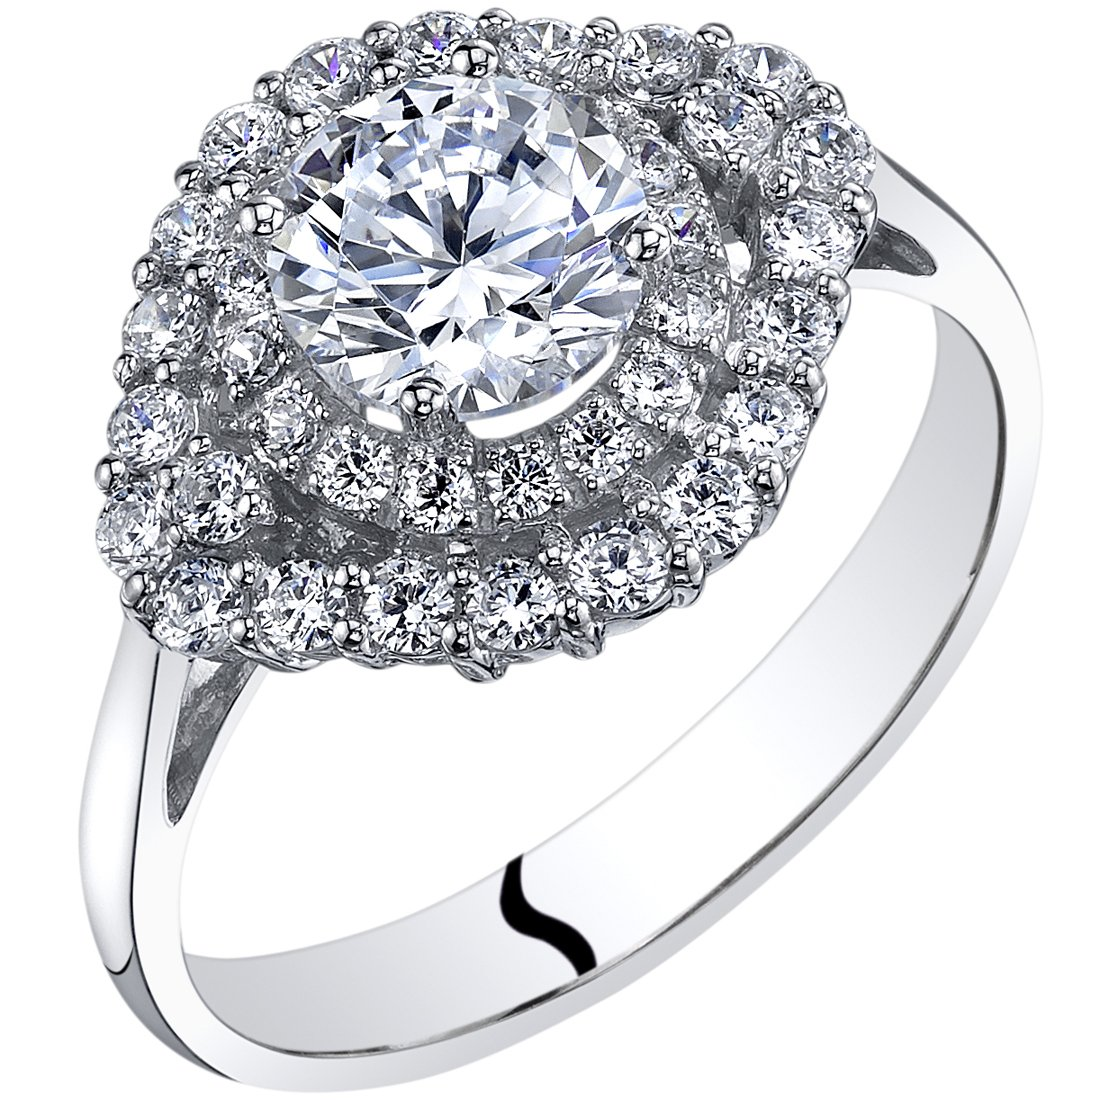 14k White Gold Cubic Zirconia Engagement Ring 1.00 Carat Center Cluster Style Size 8